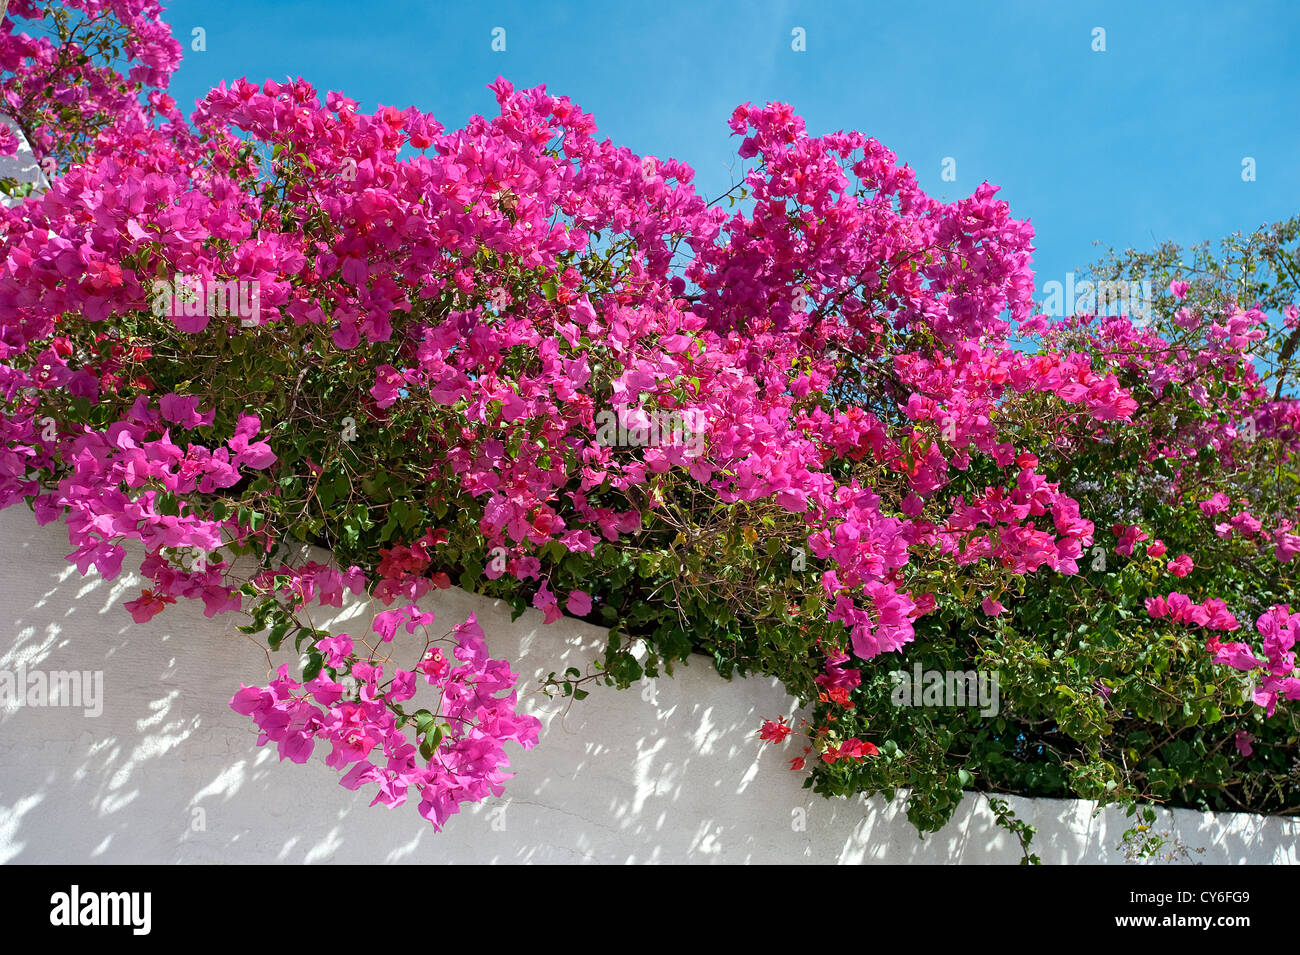 Bougainvillea, Algarve - Stock Image